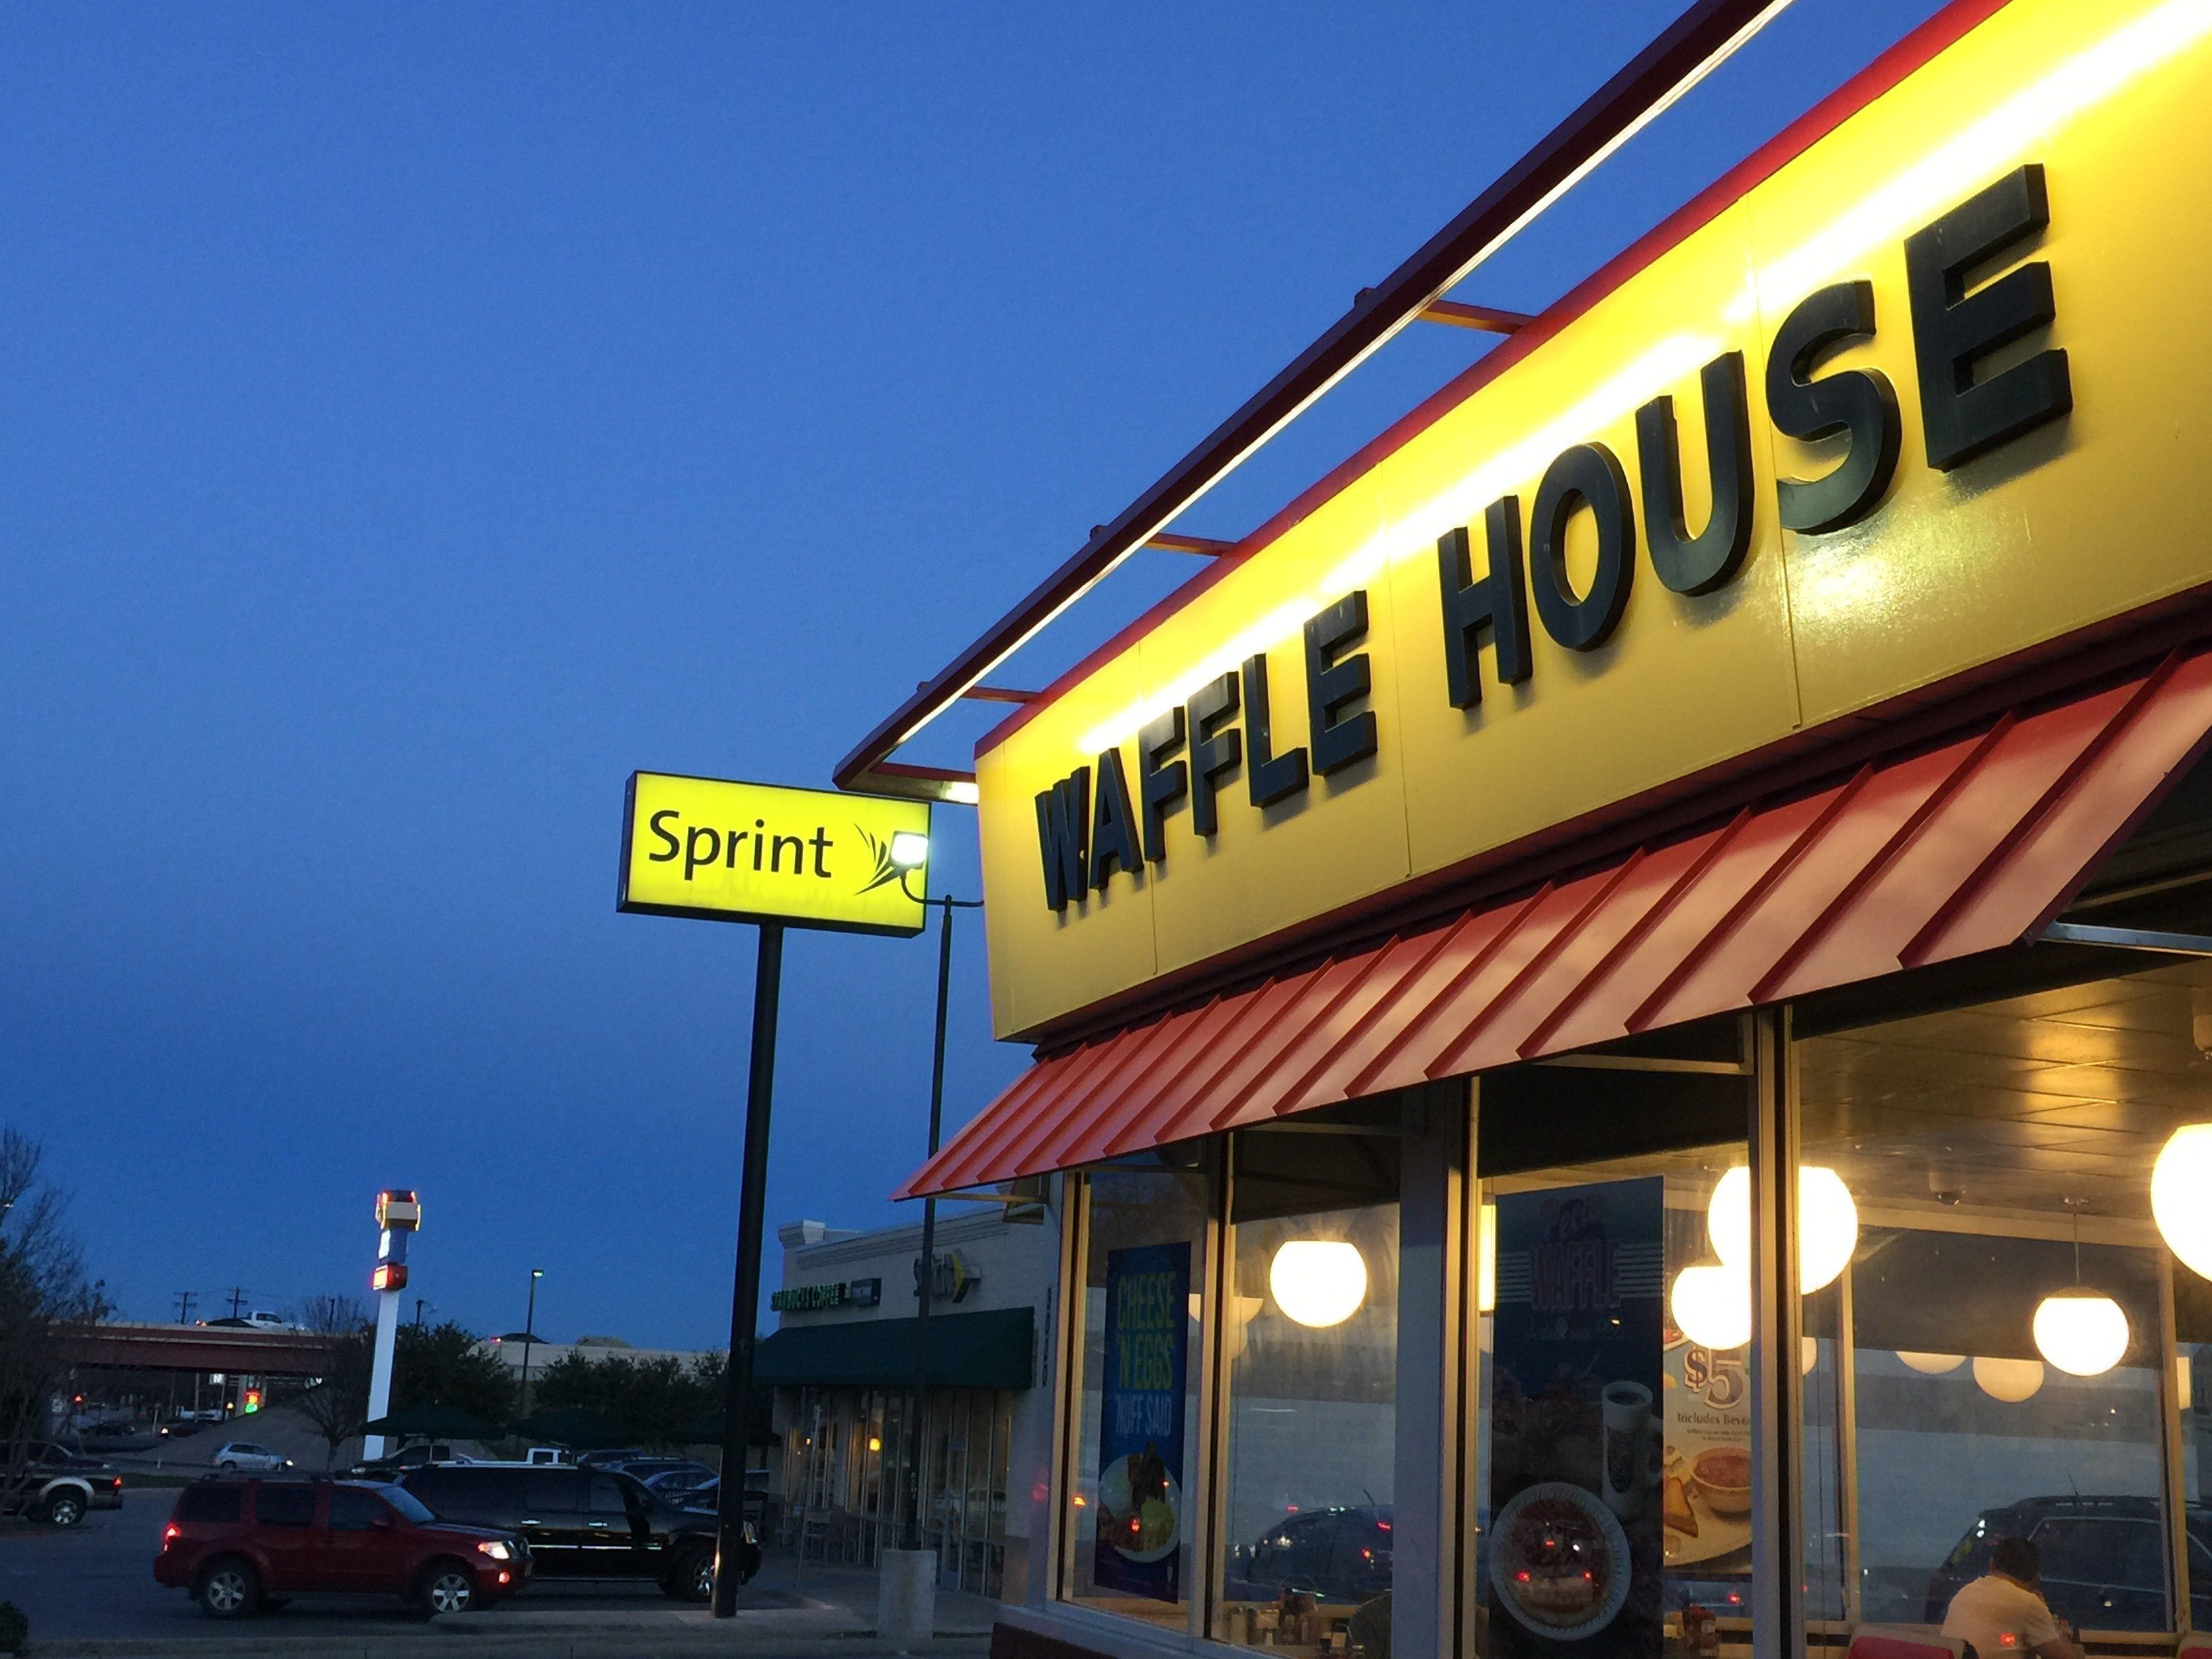 Police in Texas say a robbery suspect armed with an AK-47 assault rifle was critically shot last week by a Waffle House